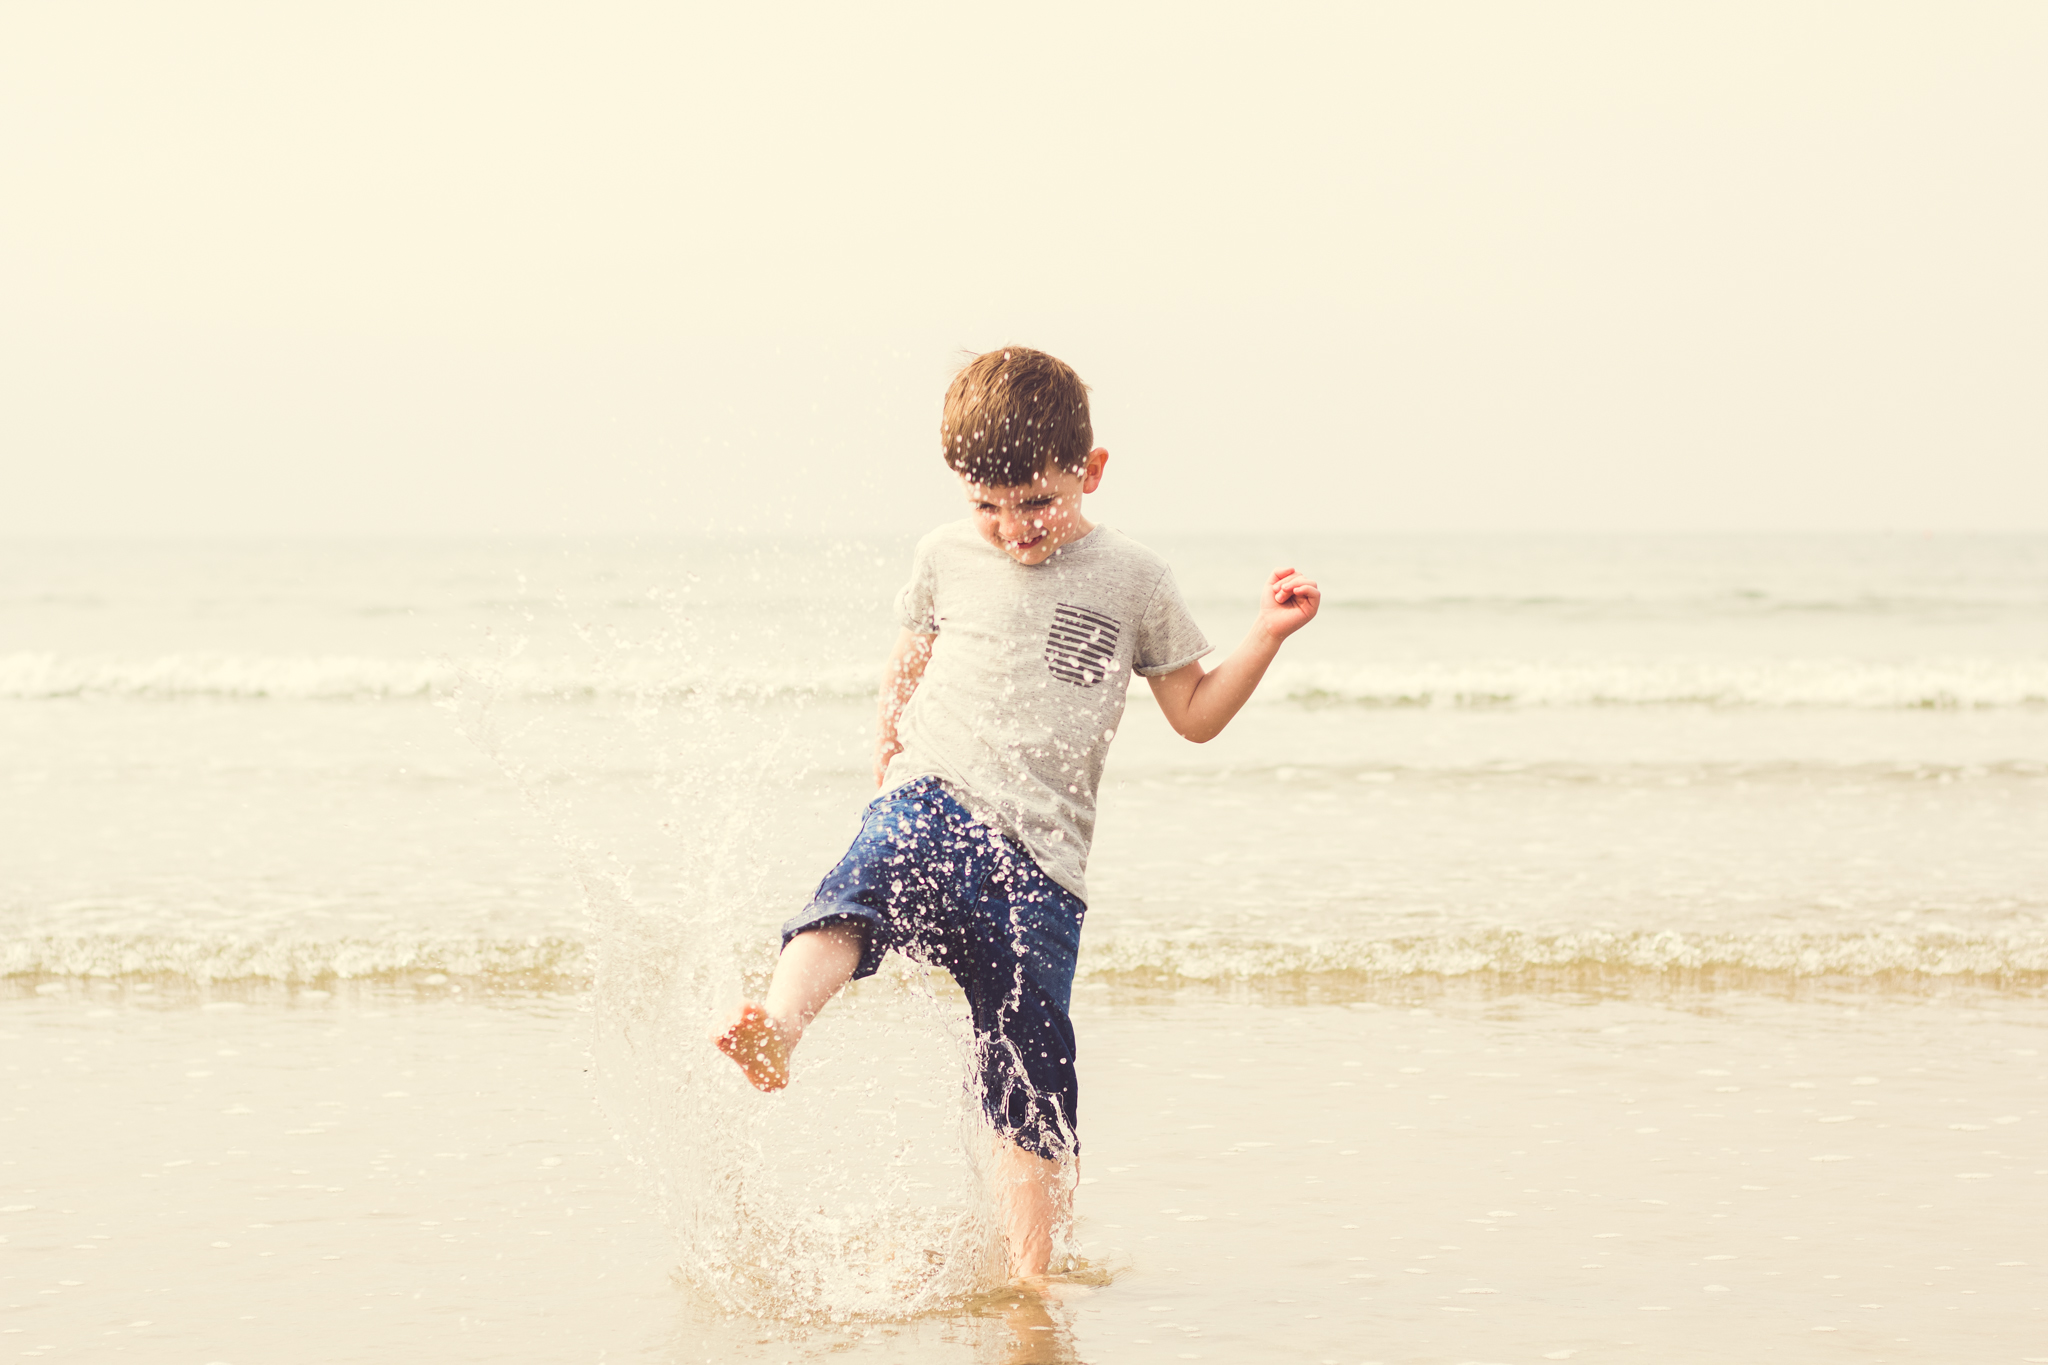 Taken in Porthmadog, Wales. {Photos by Ben - Family Photography in Cheshire}